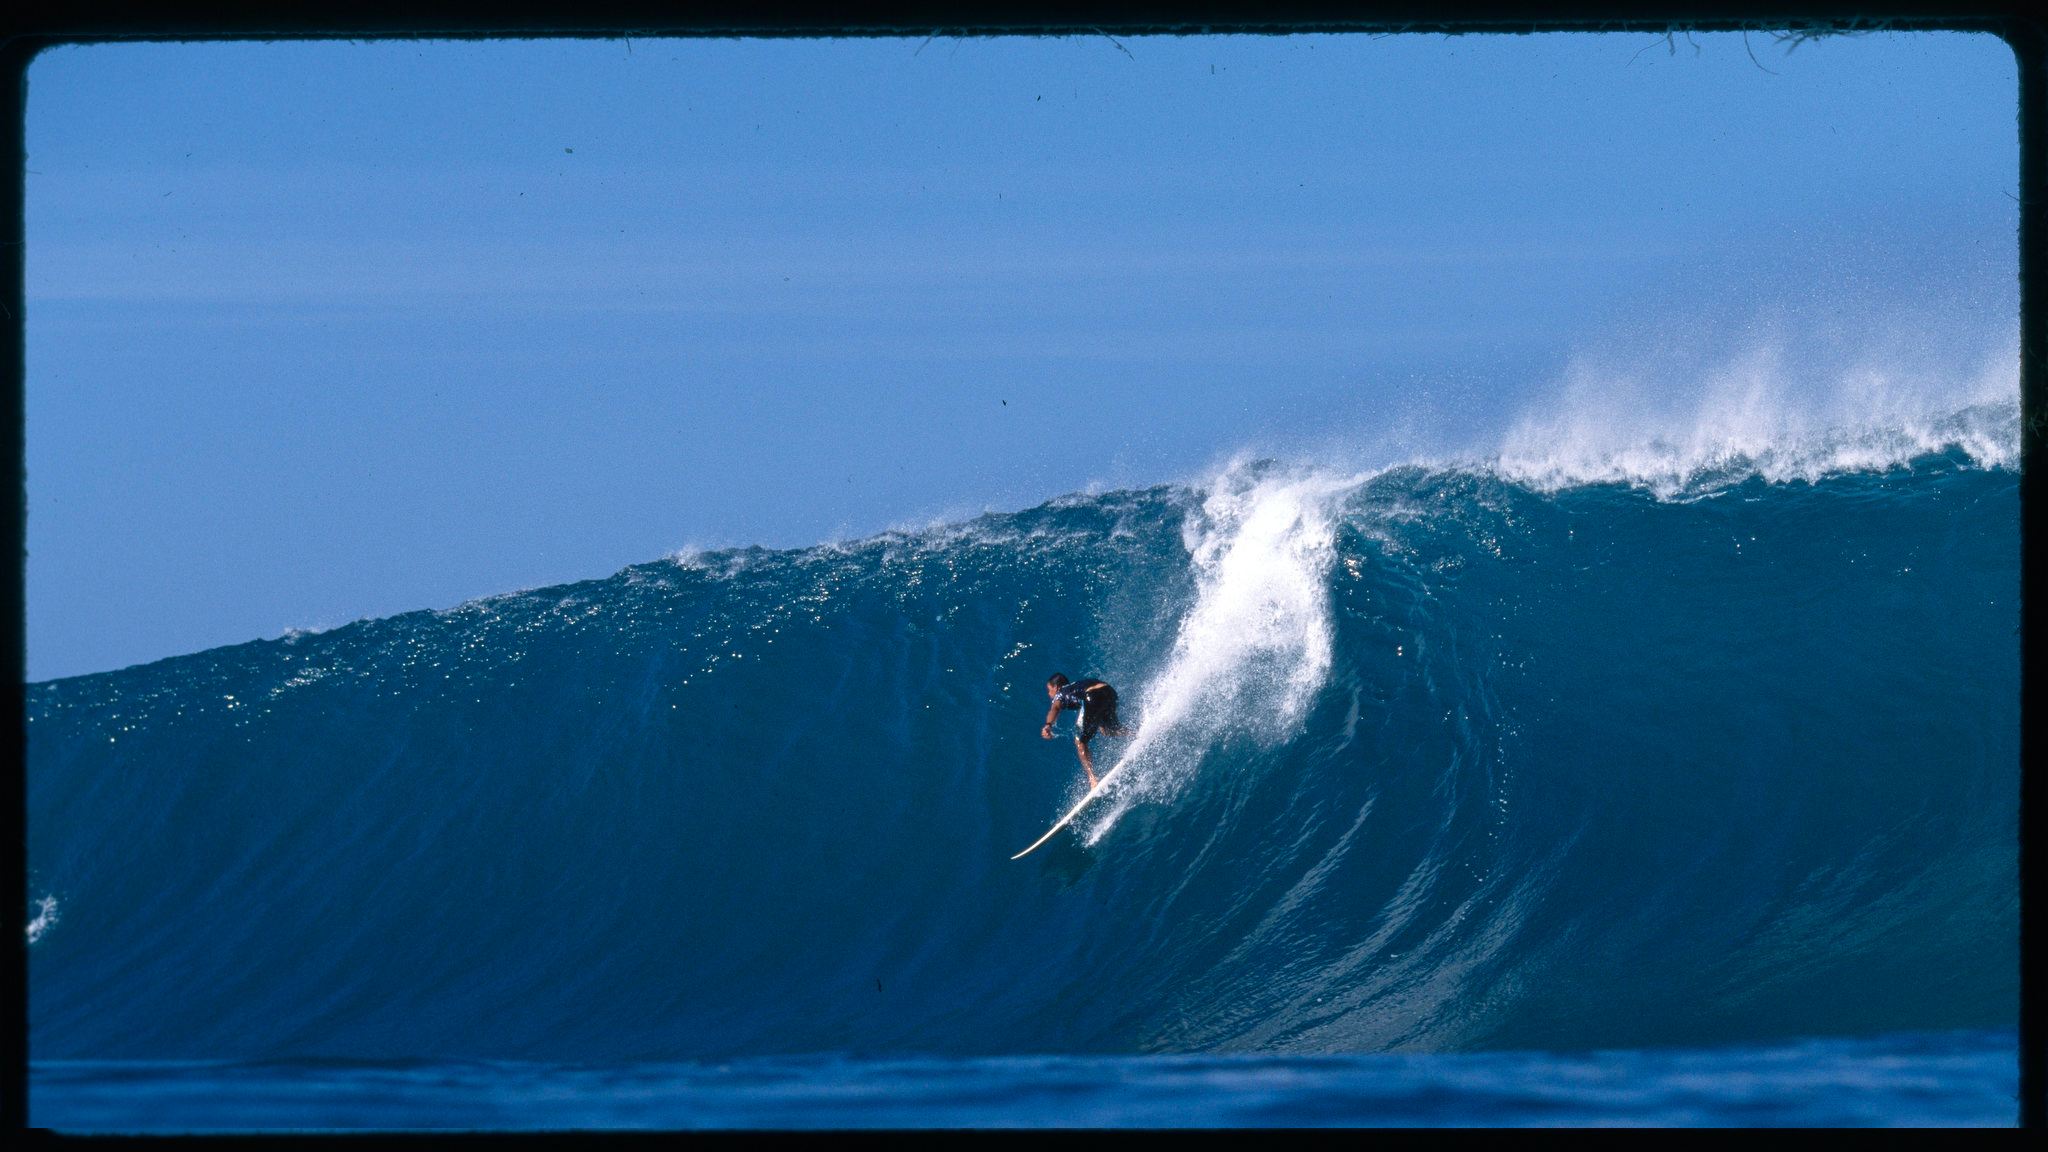 Pipeline, 1998, Backdoor Mastery